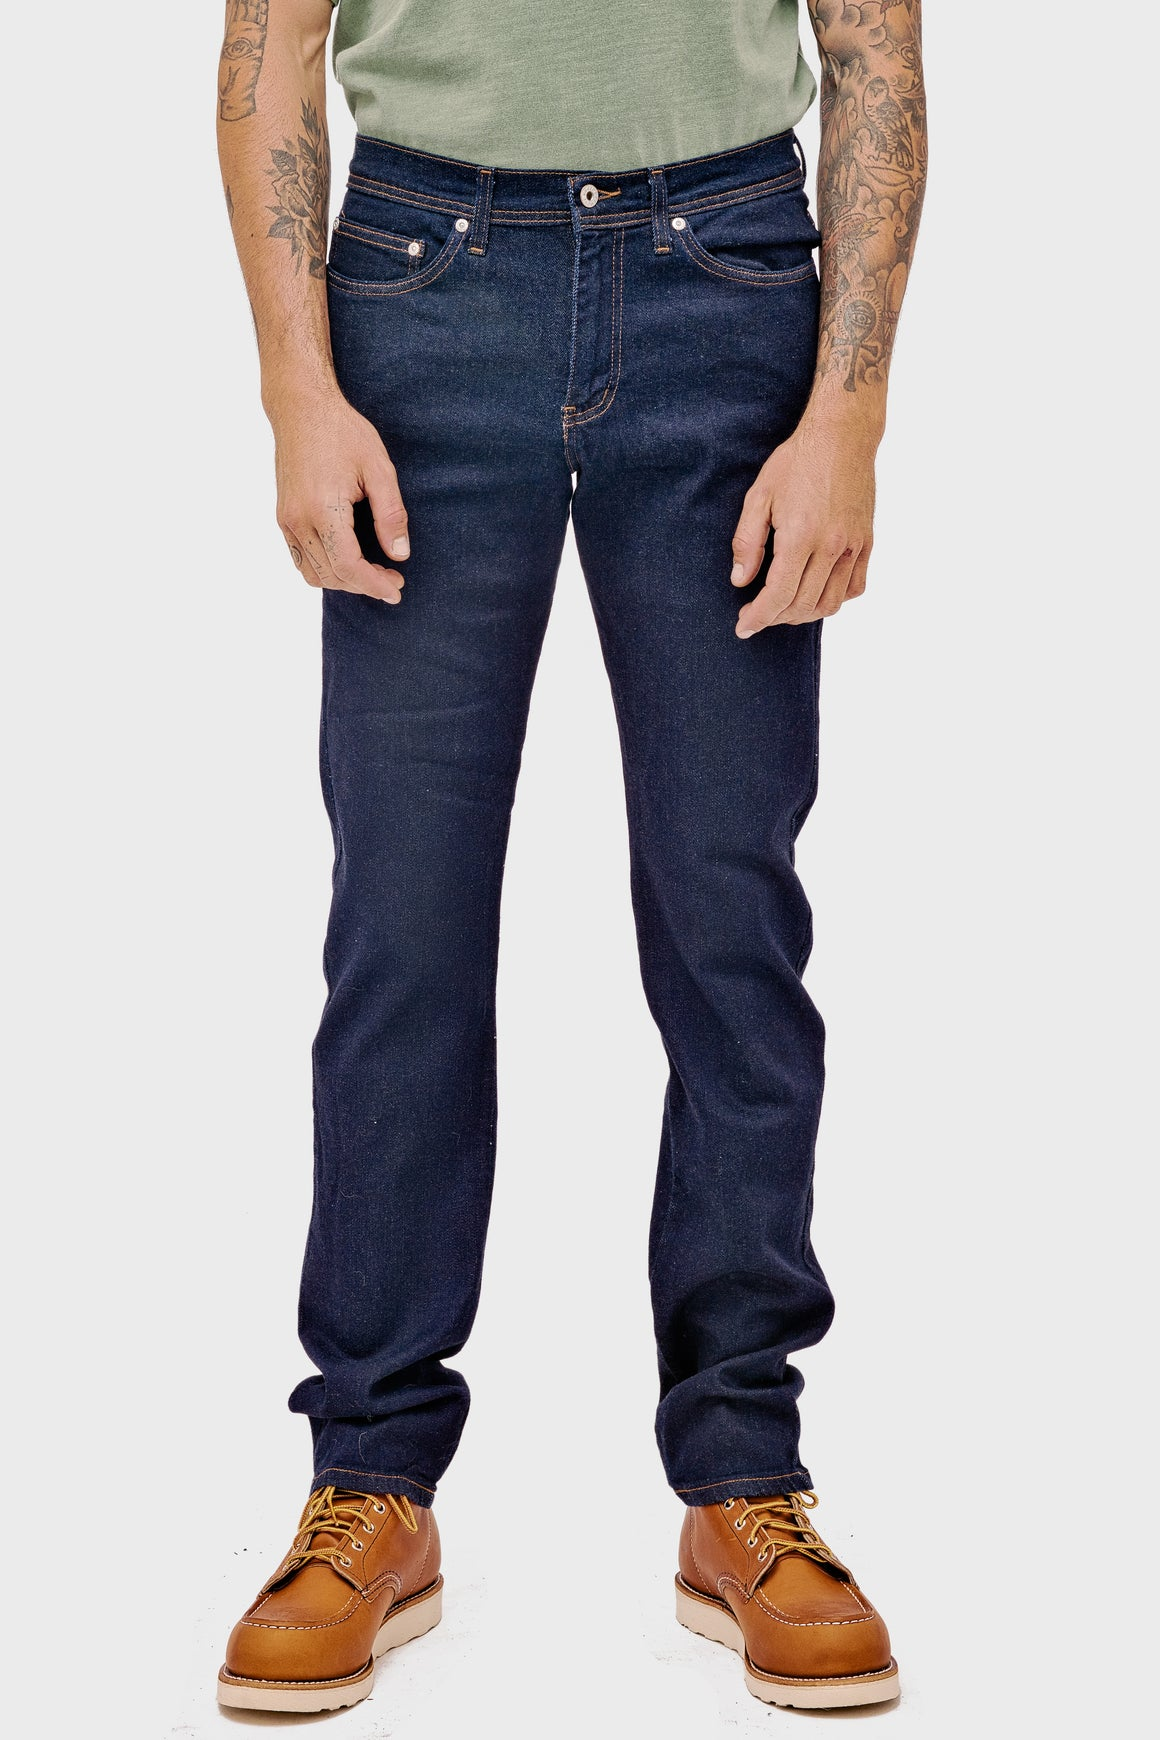 Men's Naked & Famous Weird Guy Active Motion Denim